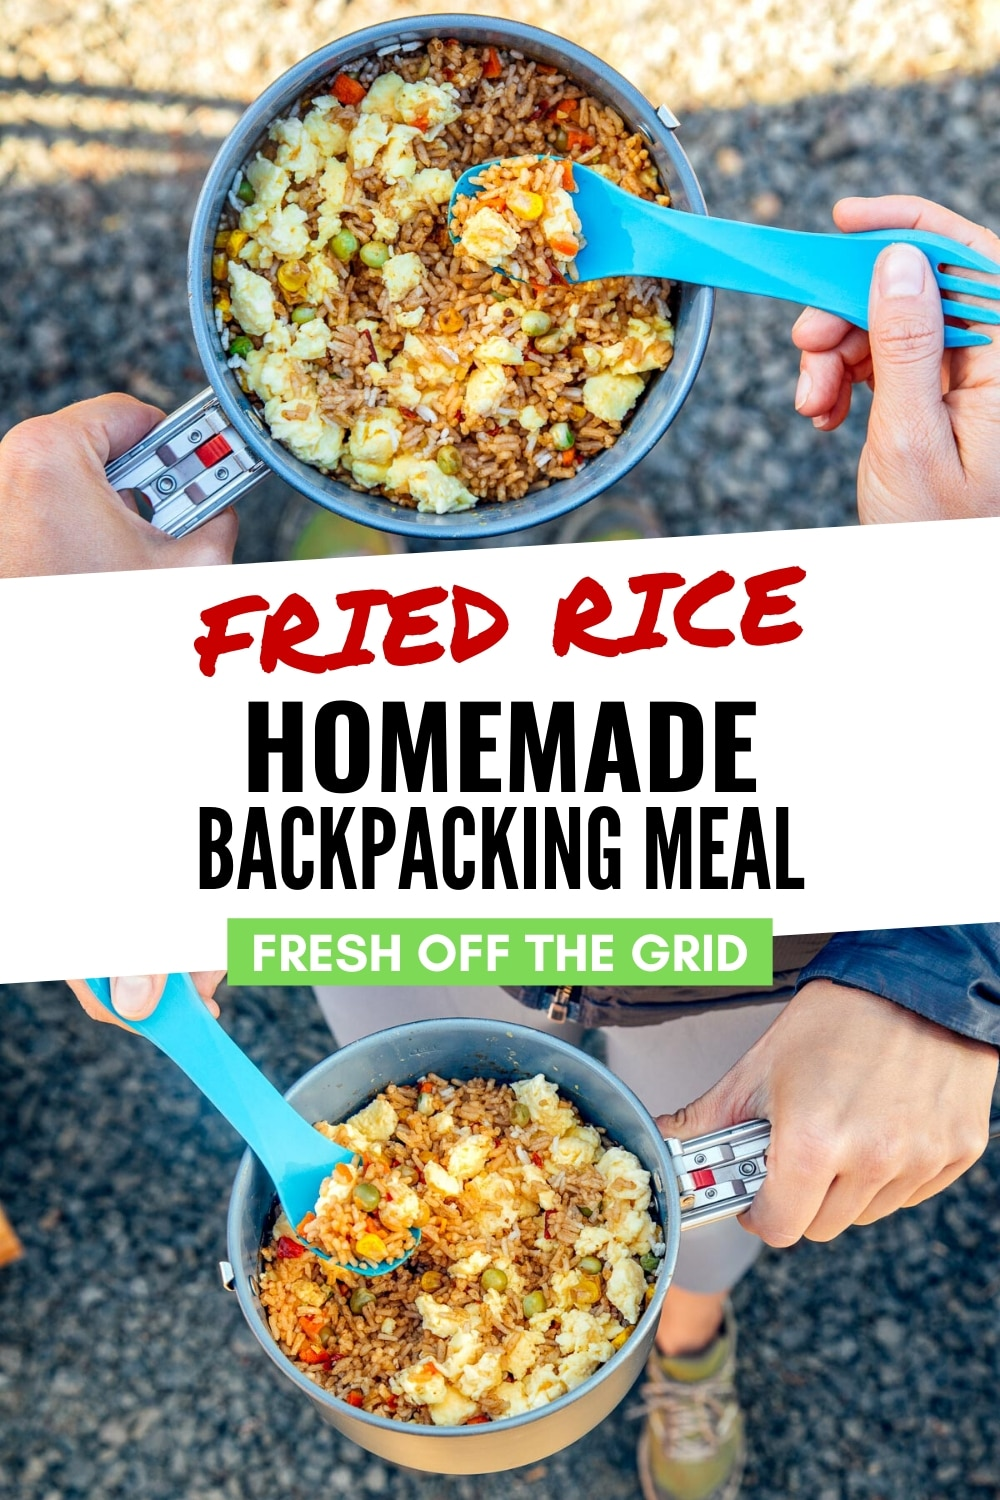 This Backcountry Fried Rice is a homemade backpacking meal that does not require a dehydrator! Using store bought ingredients, you can easily make this take-out food classic on the trail. Backpacking food   Backpacking recipe via @freshoffthegrid